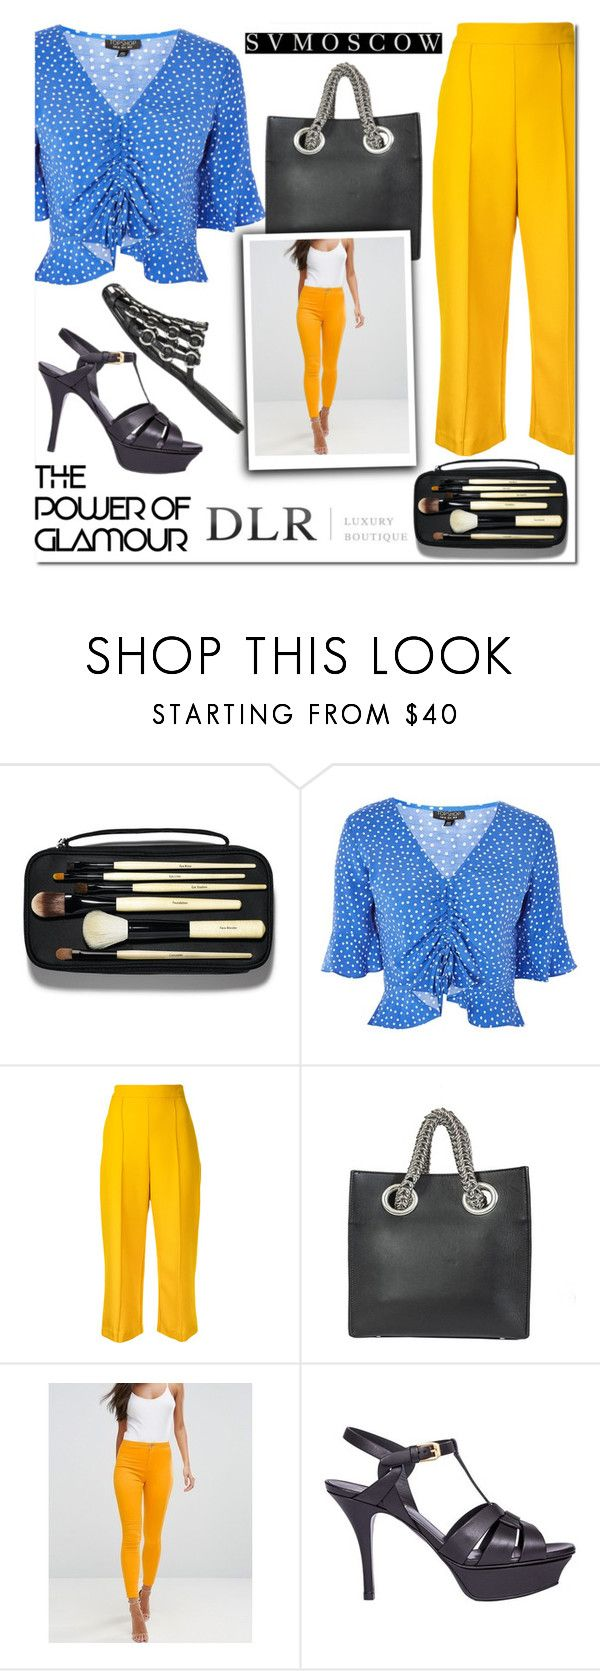 """""""Welcome promo code DLR15"""" by beenabloss ❤ liked on Polyvore featuring Bobbi Brown Cosmetics, Topshop, macgraw, Alexander Wang, ASOS and Yves Saint Laurent"""